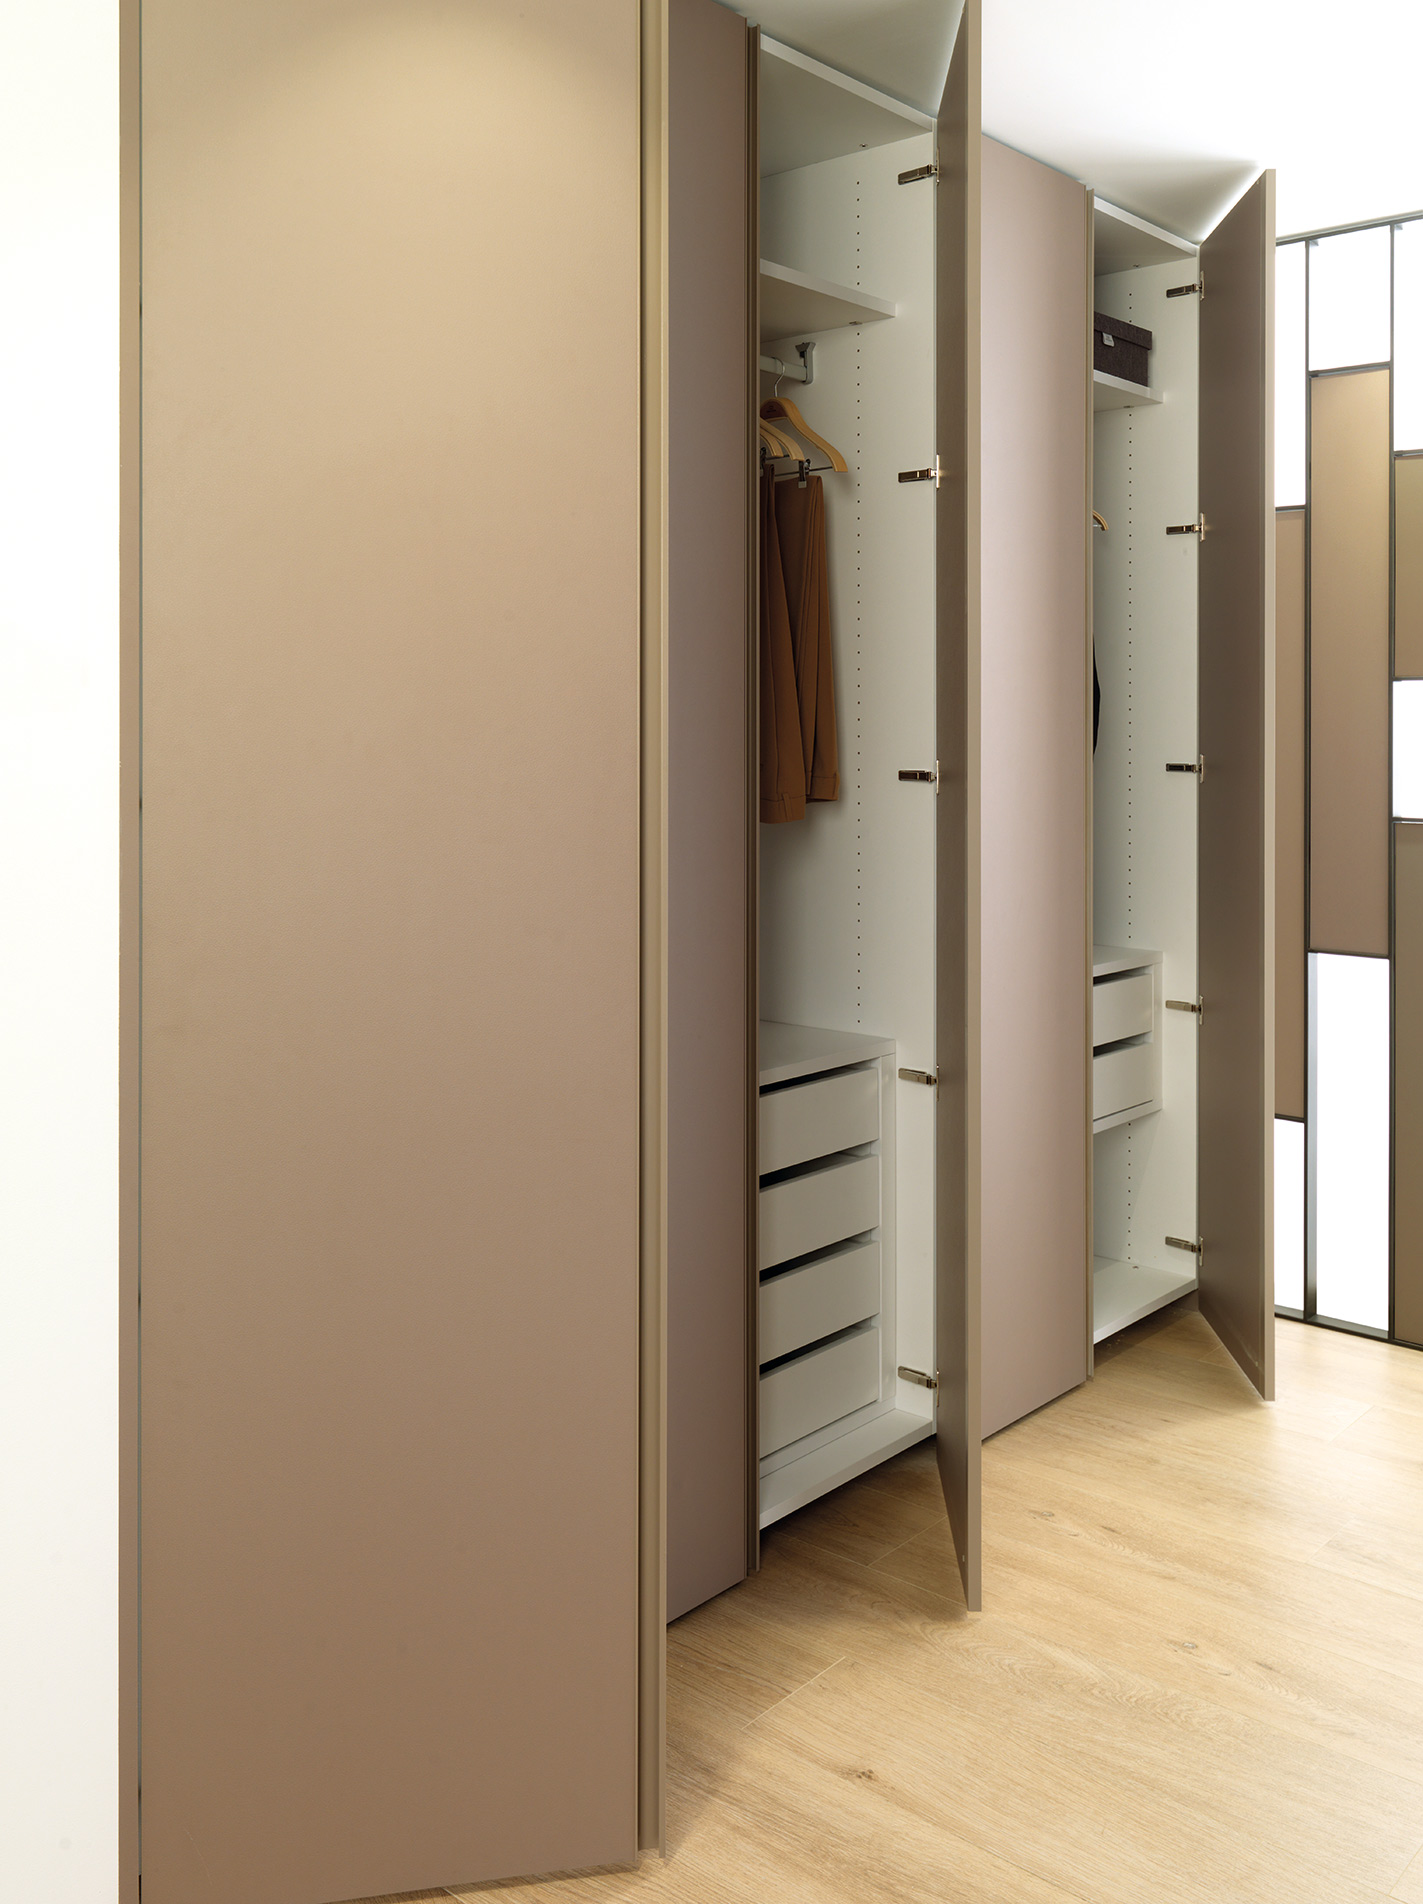 SIMA 2018: a showcase for Gamadecor's kitchens and wardrobes